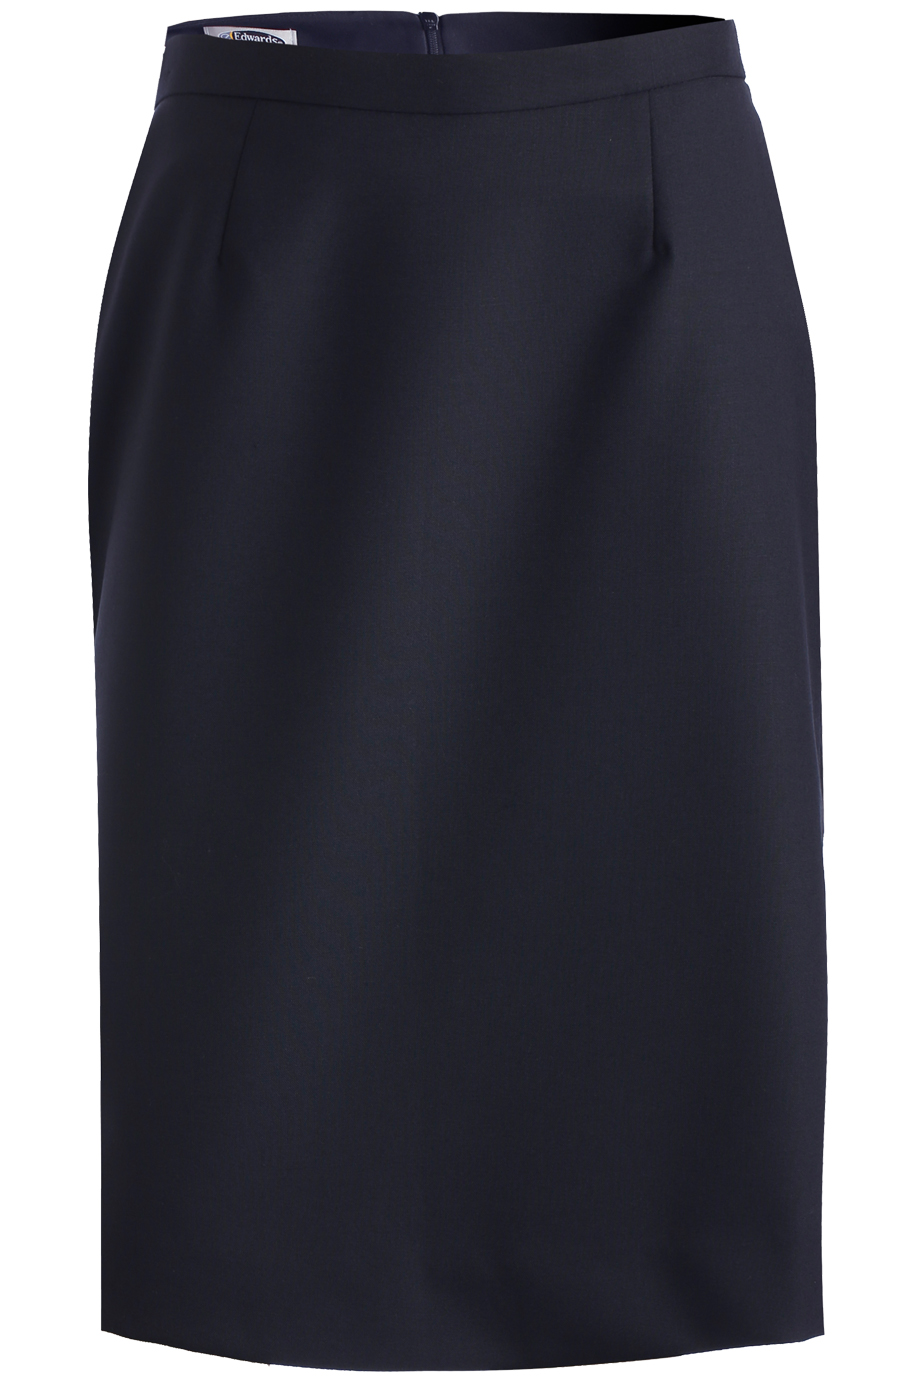 Women's Wool Blend Dress Skirt 9789